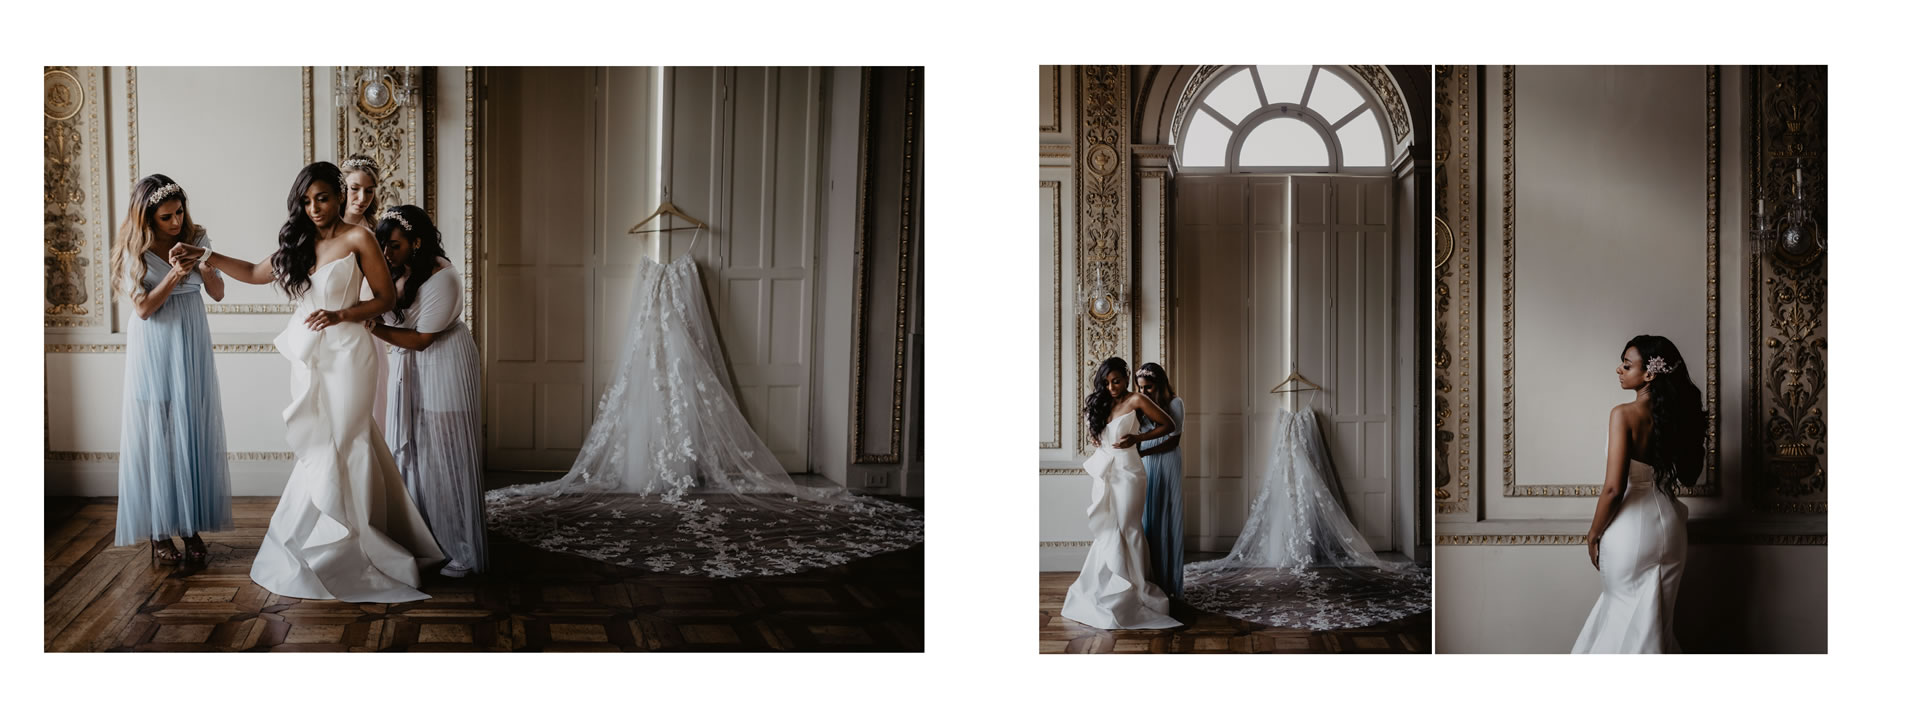 A Love story … from Rome to Harpers' Bazaar - 9 :: A Love story… from Rome to Harper's Bazaar :: Luxury wedding photography - 8 :: A Love story … from Rome to Harpers' Bazaar - 9